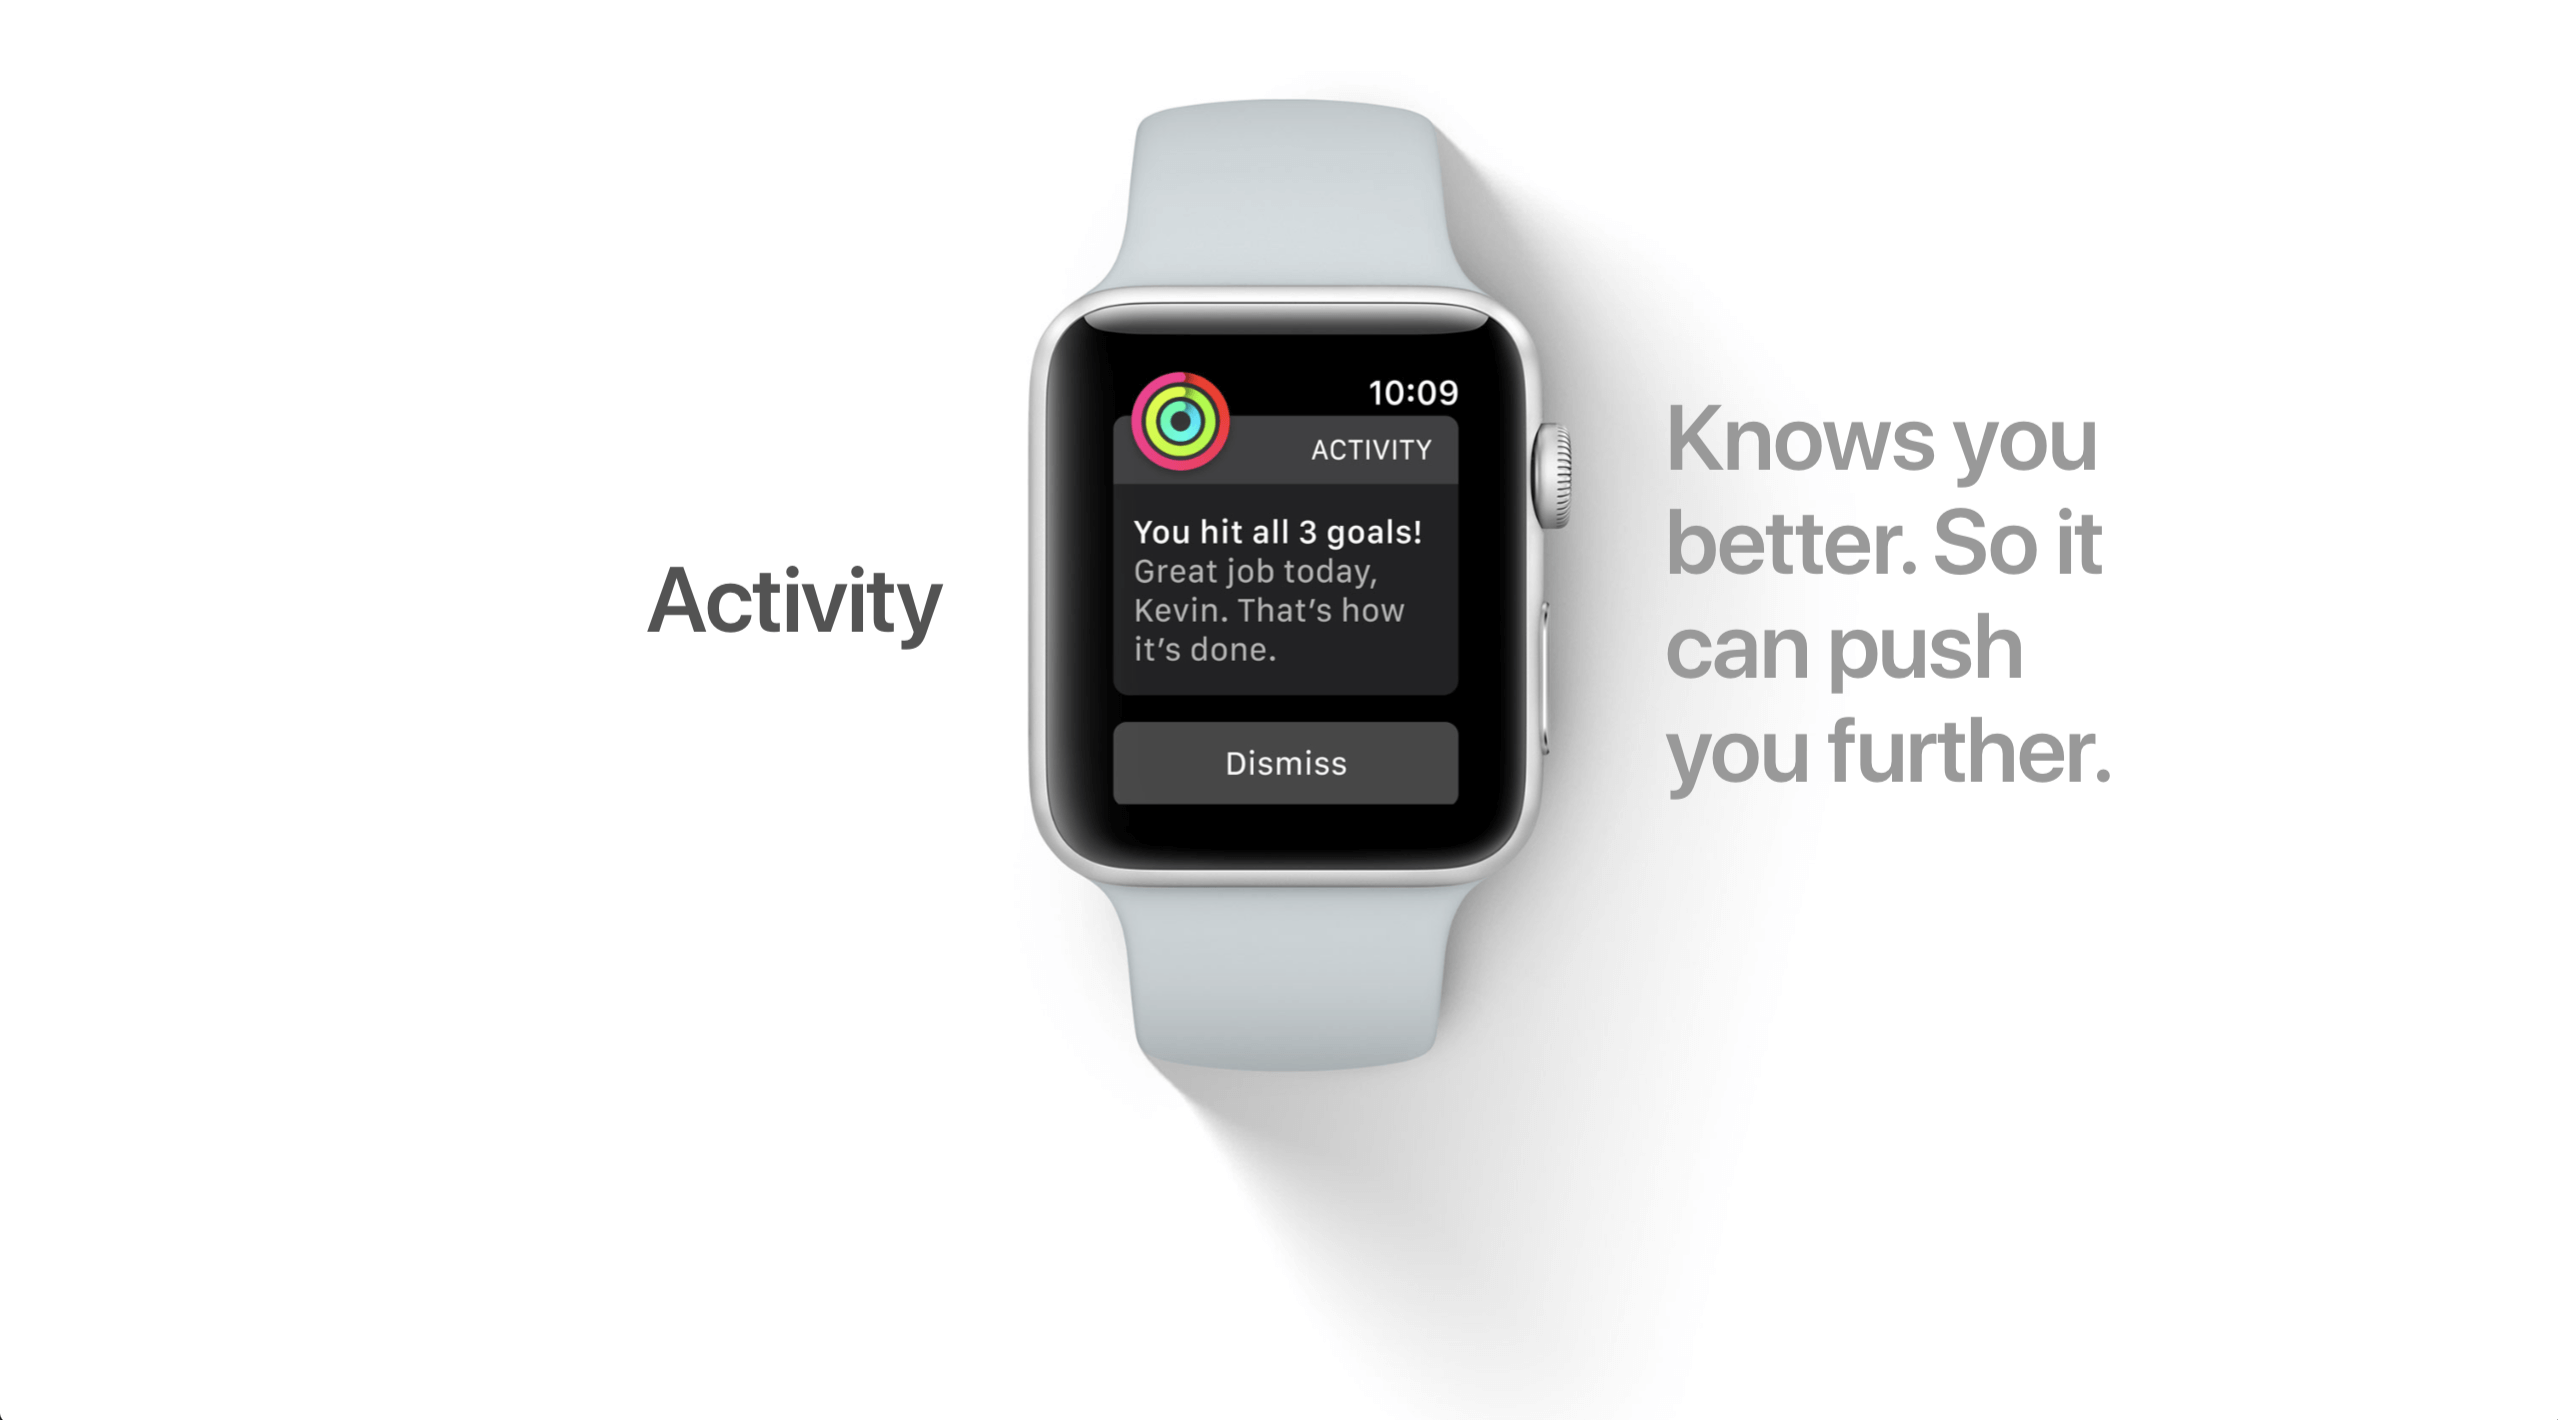 watchOS Activity